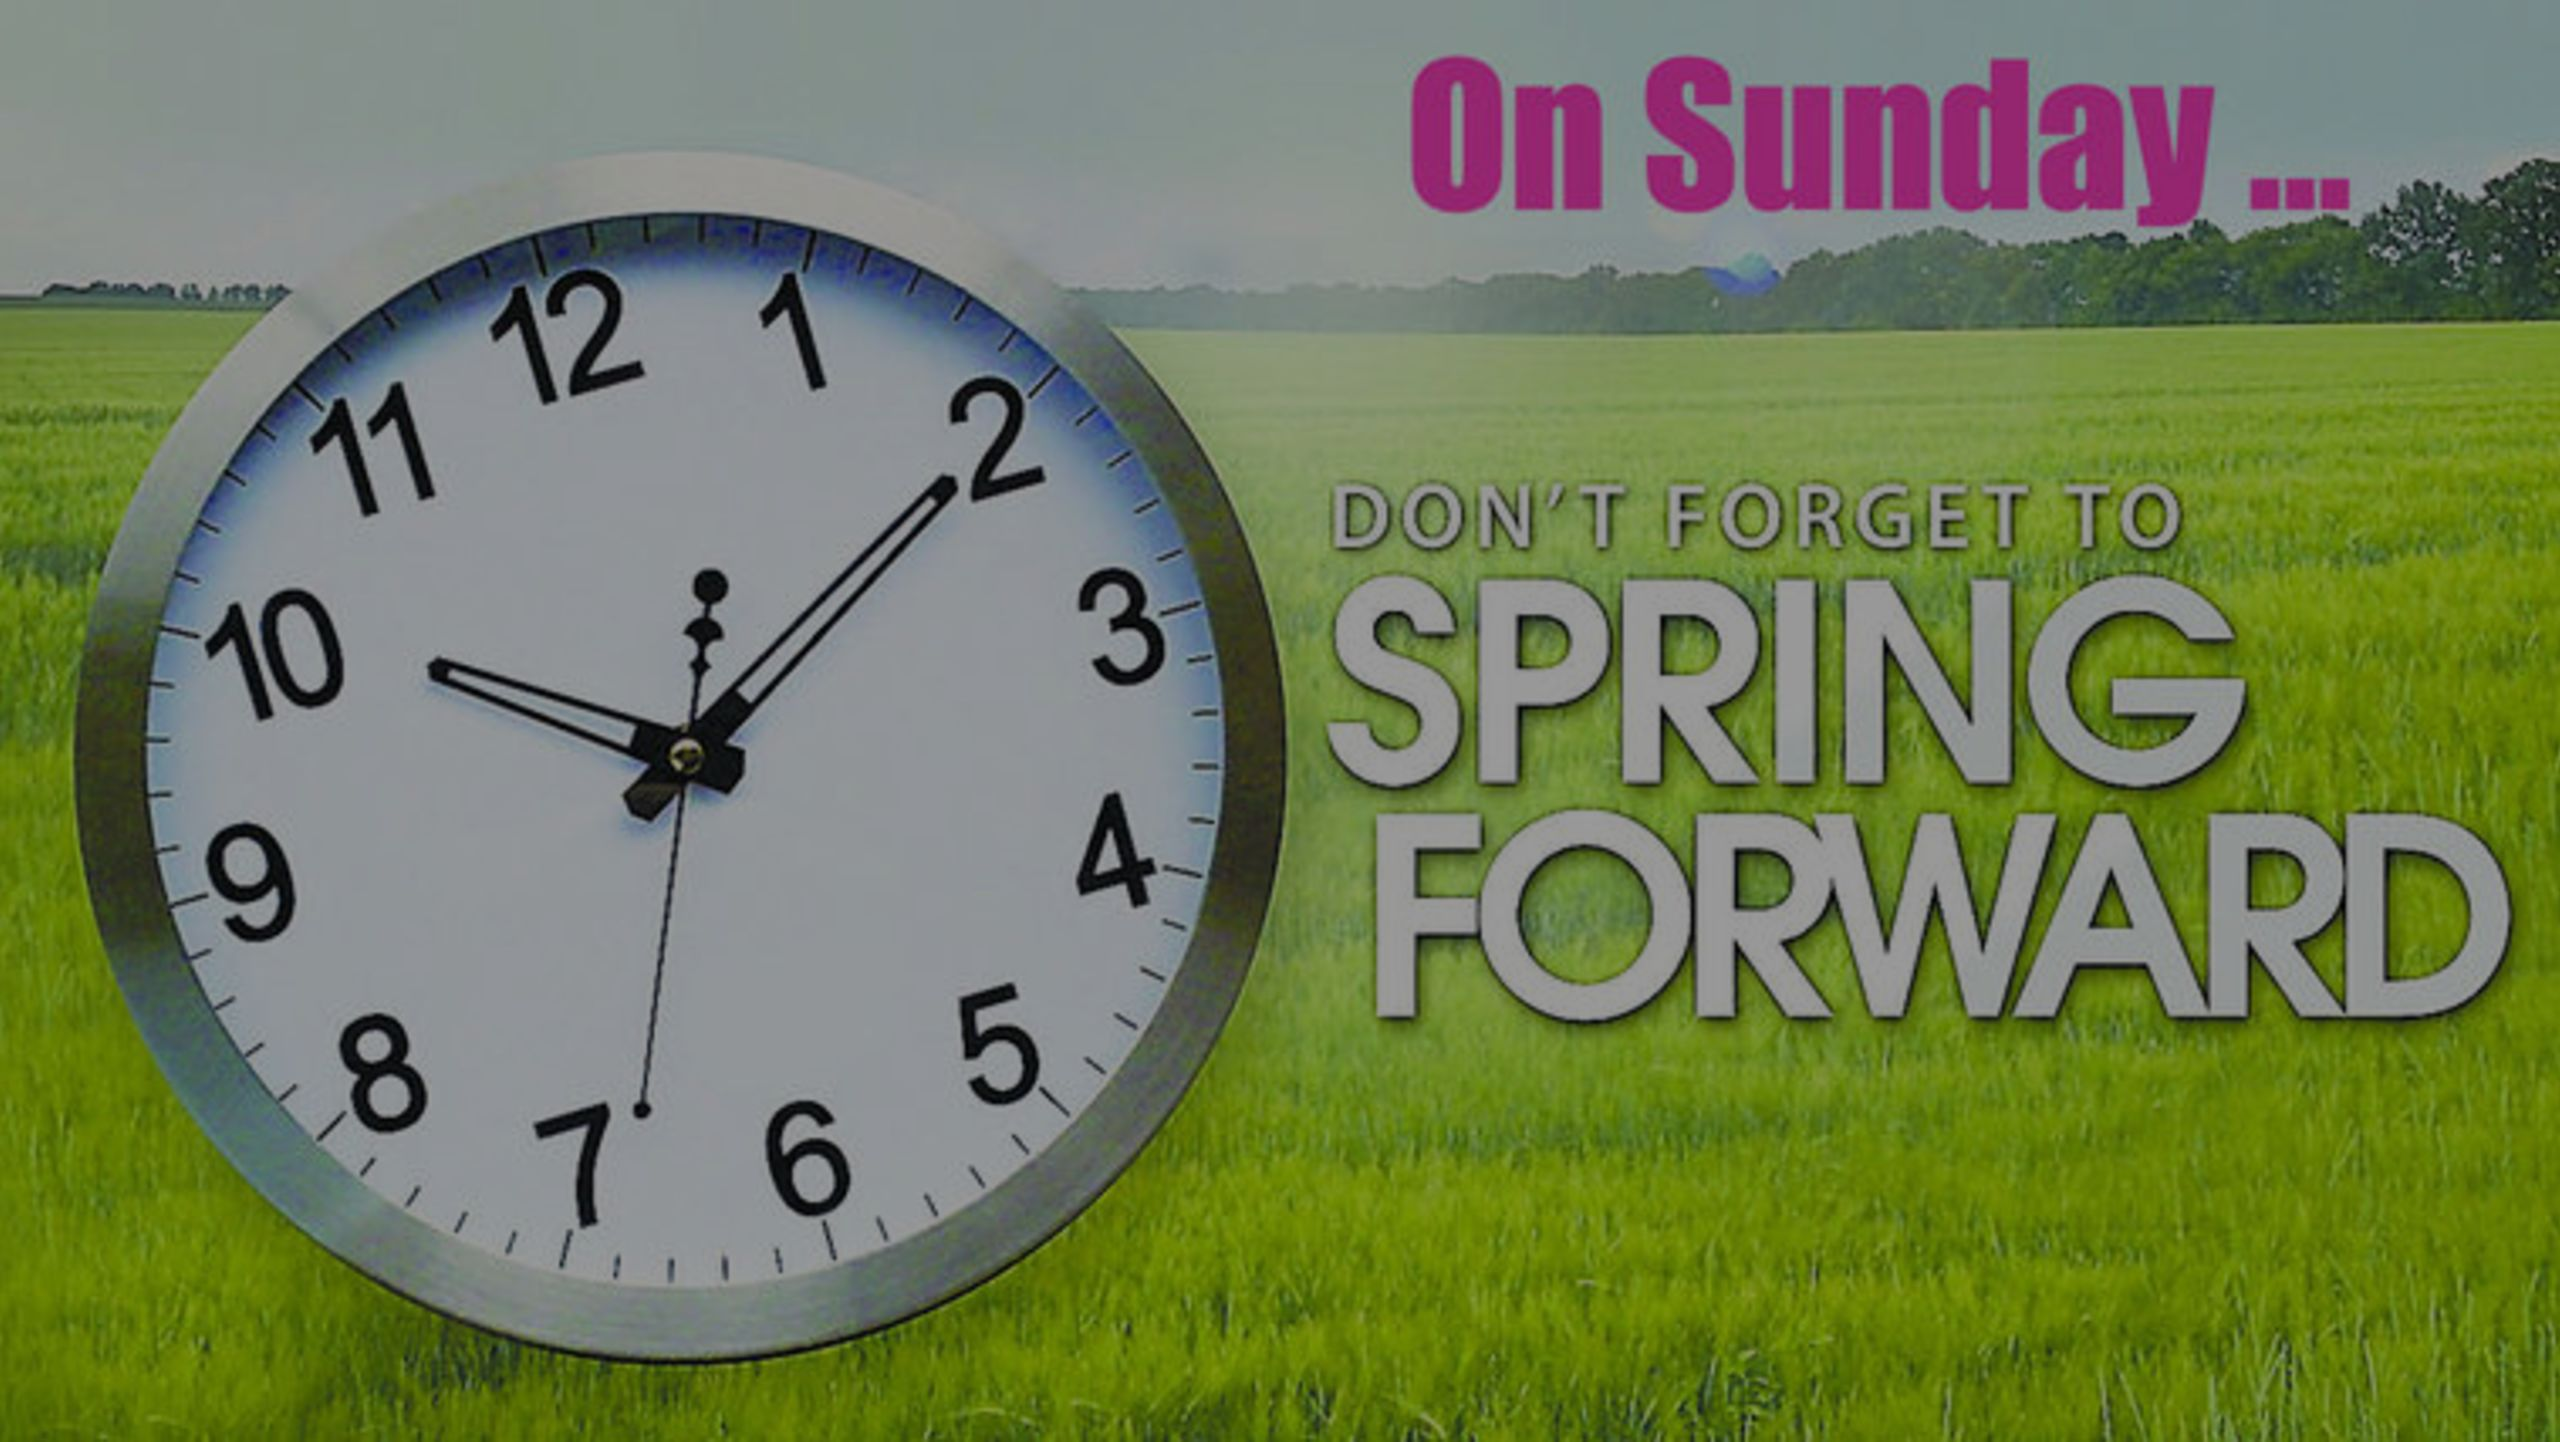 Don't Forget This Weekend To Turn Your Clocks Forward!